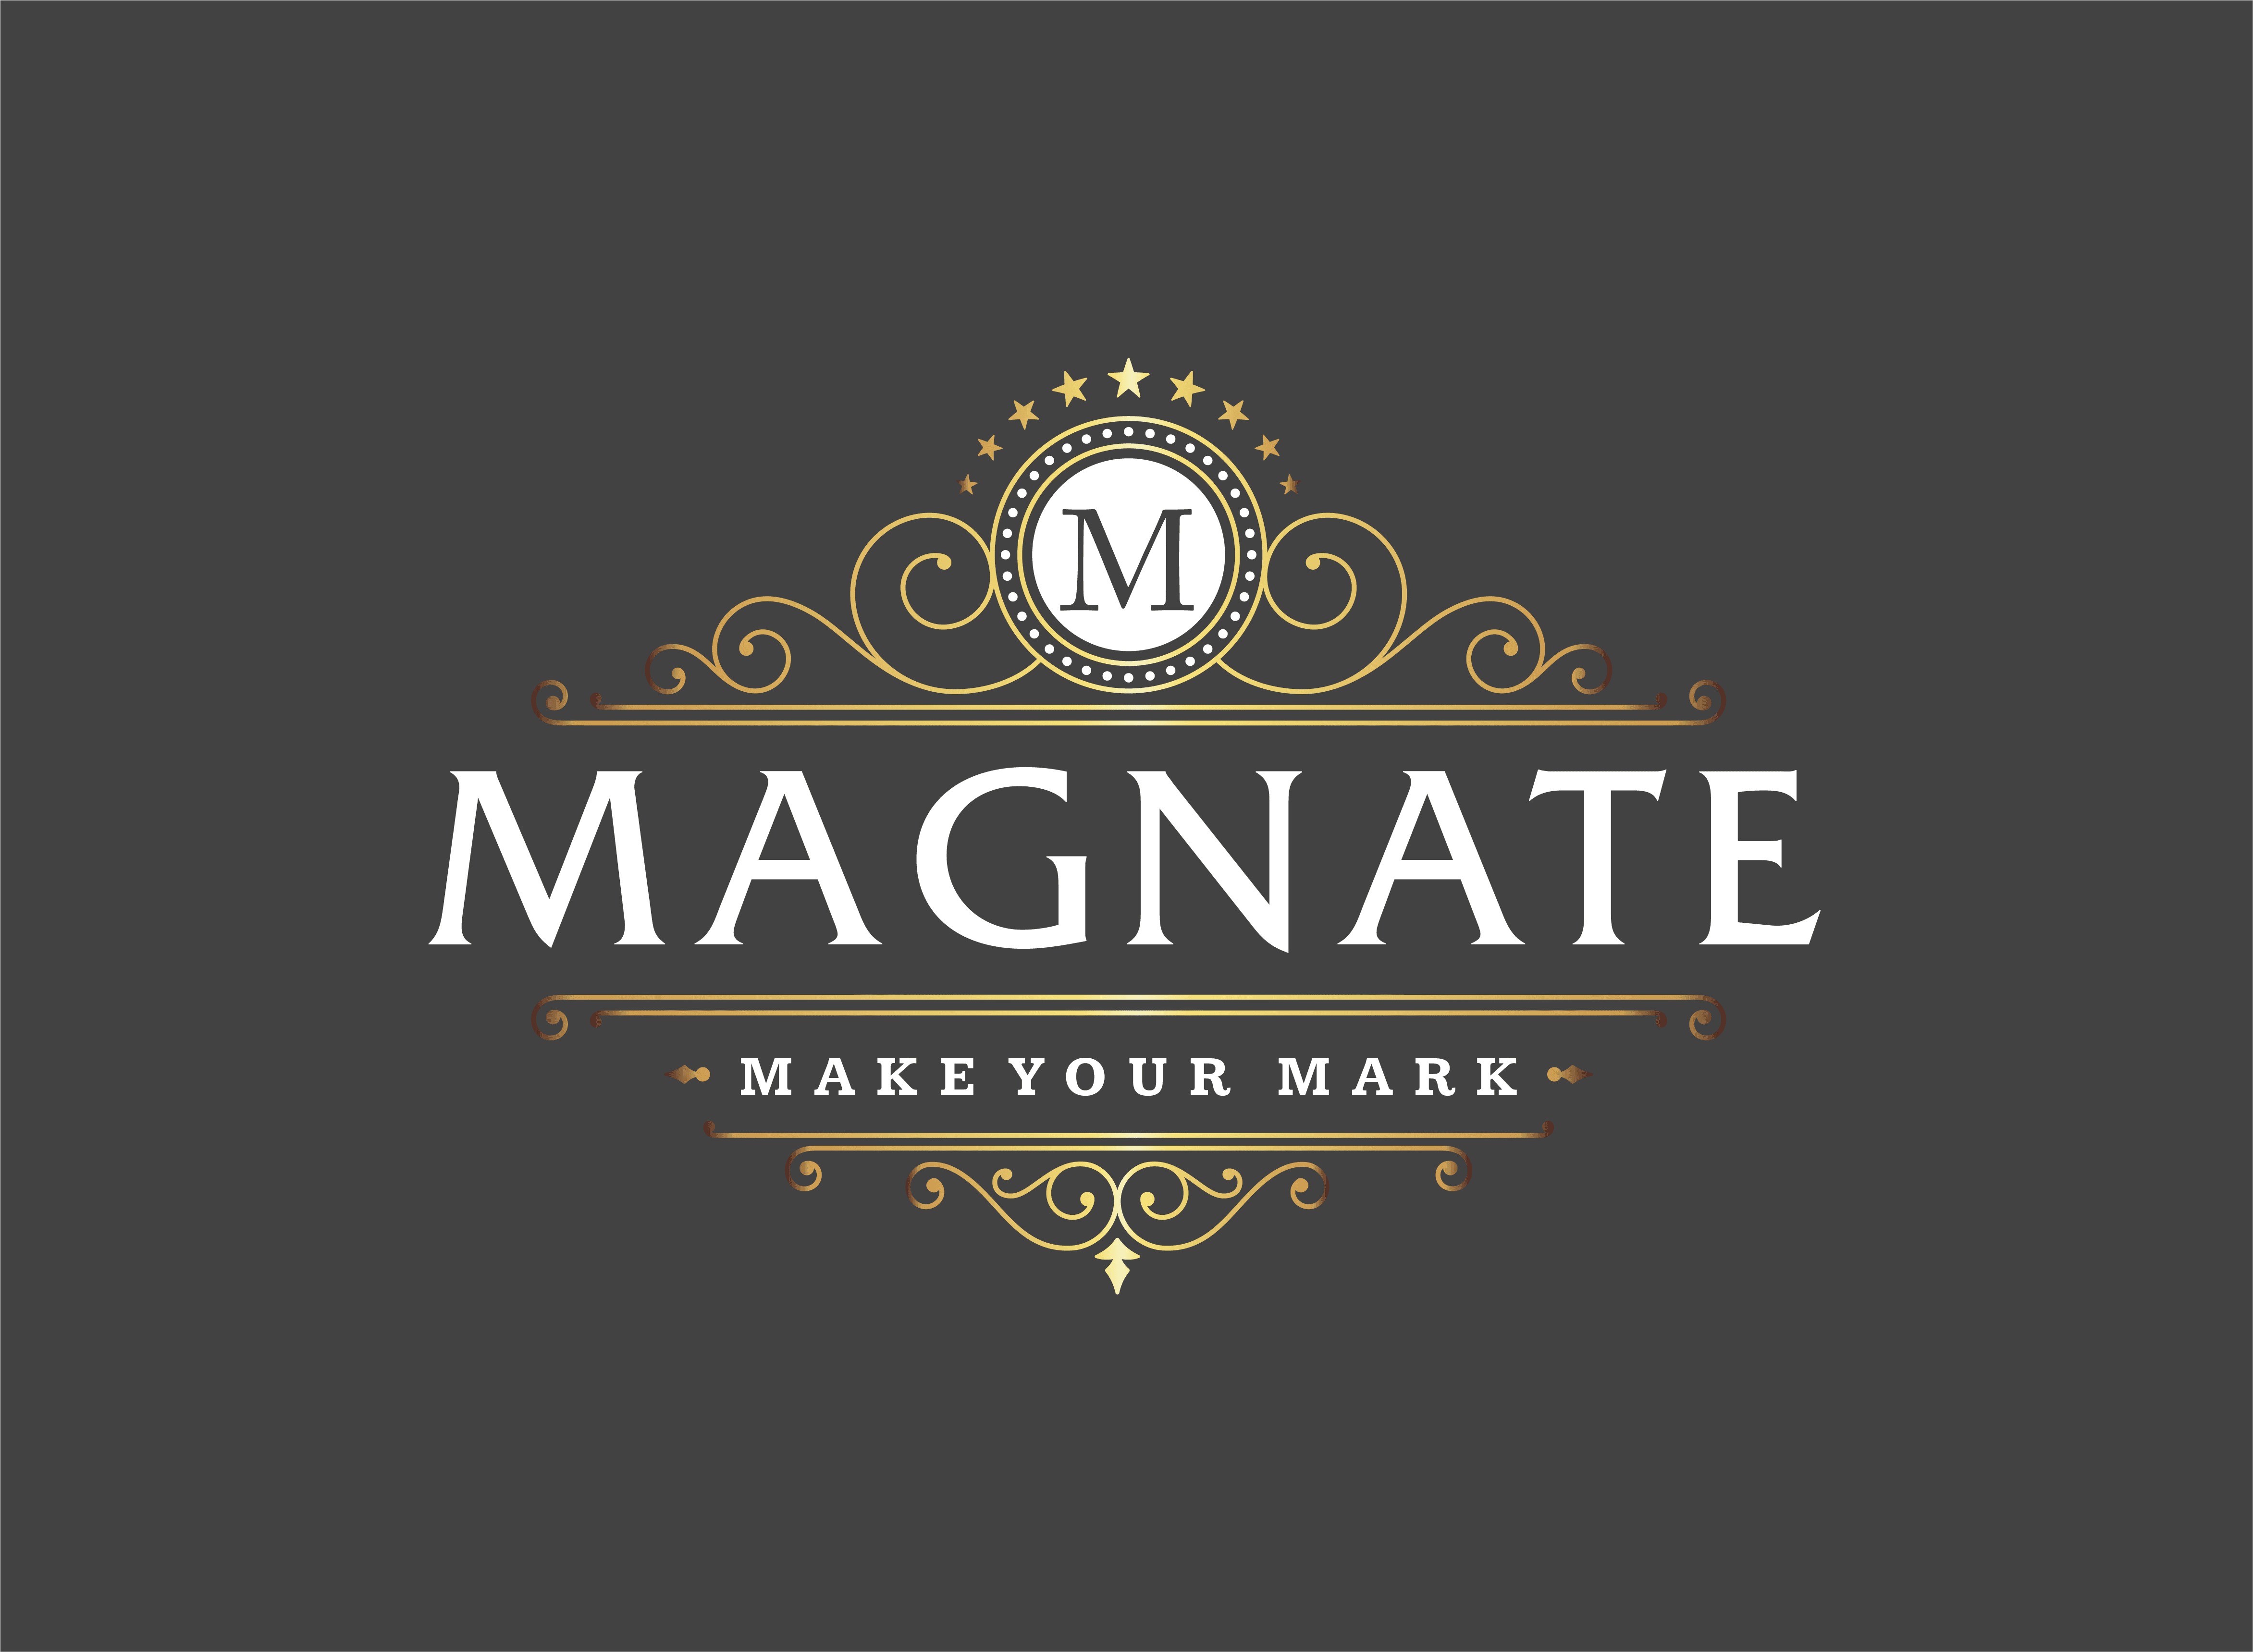 Magnate: Make Your Mark